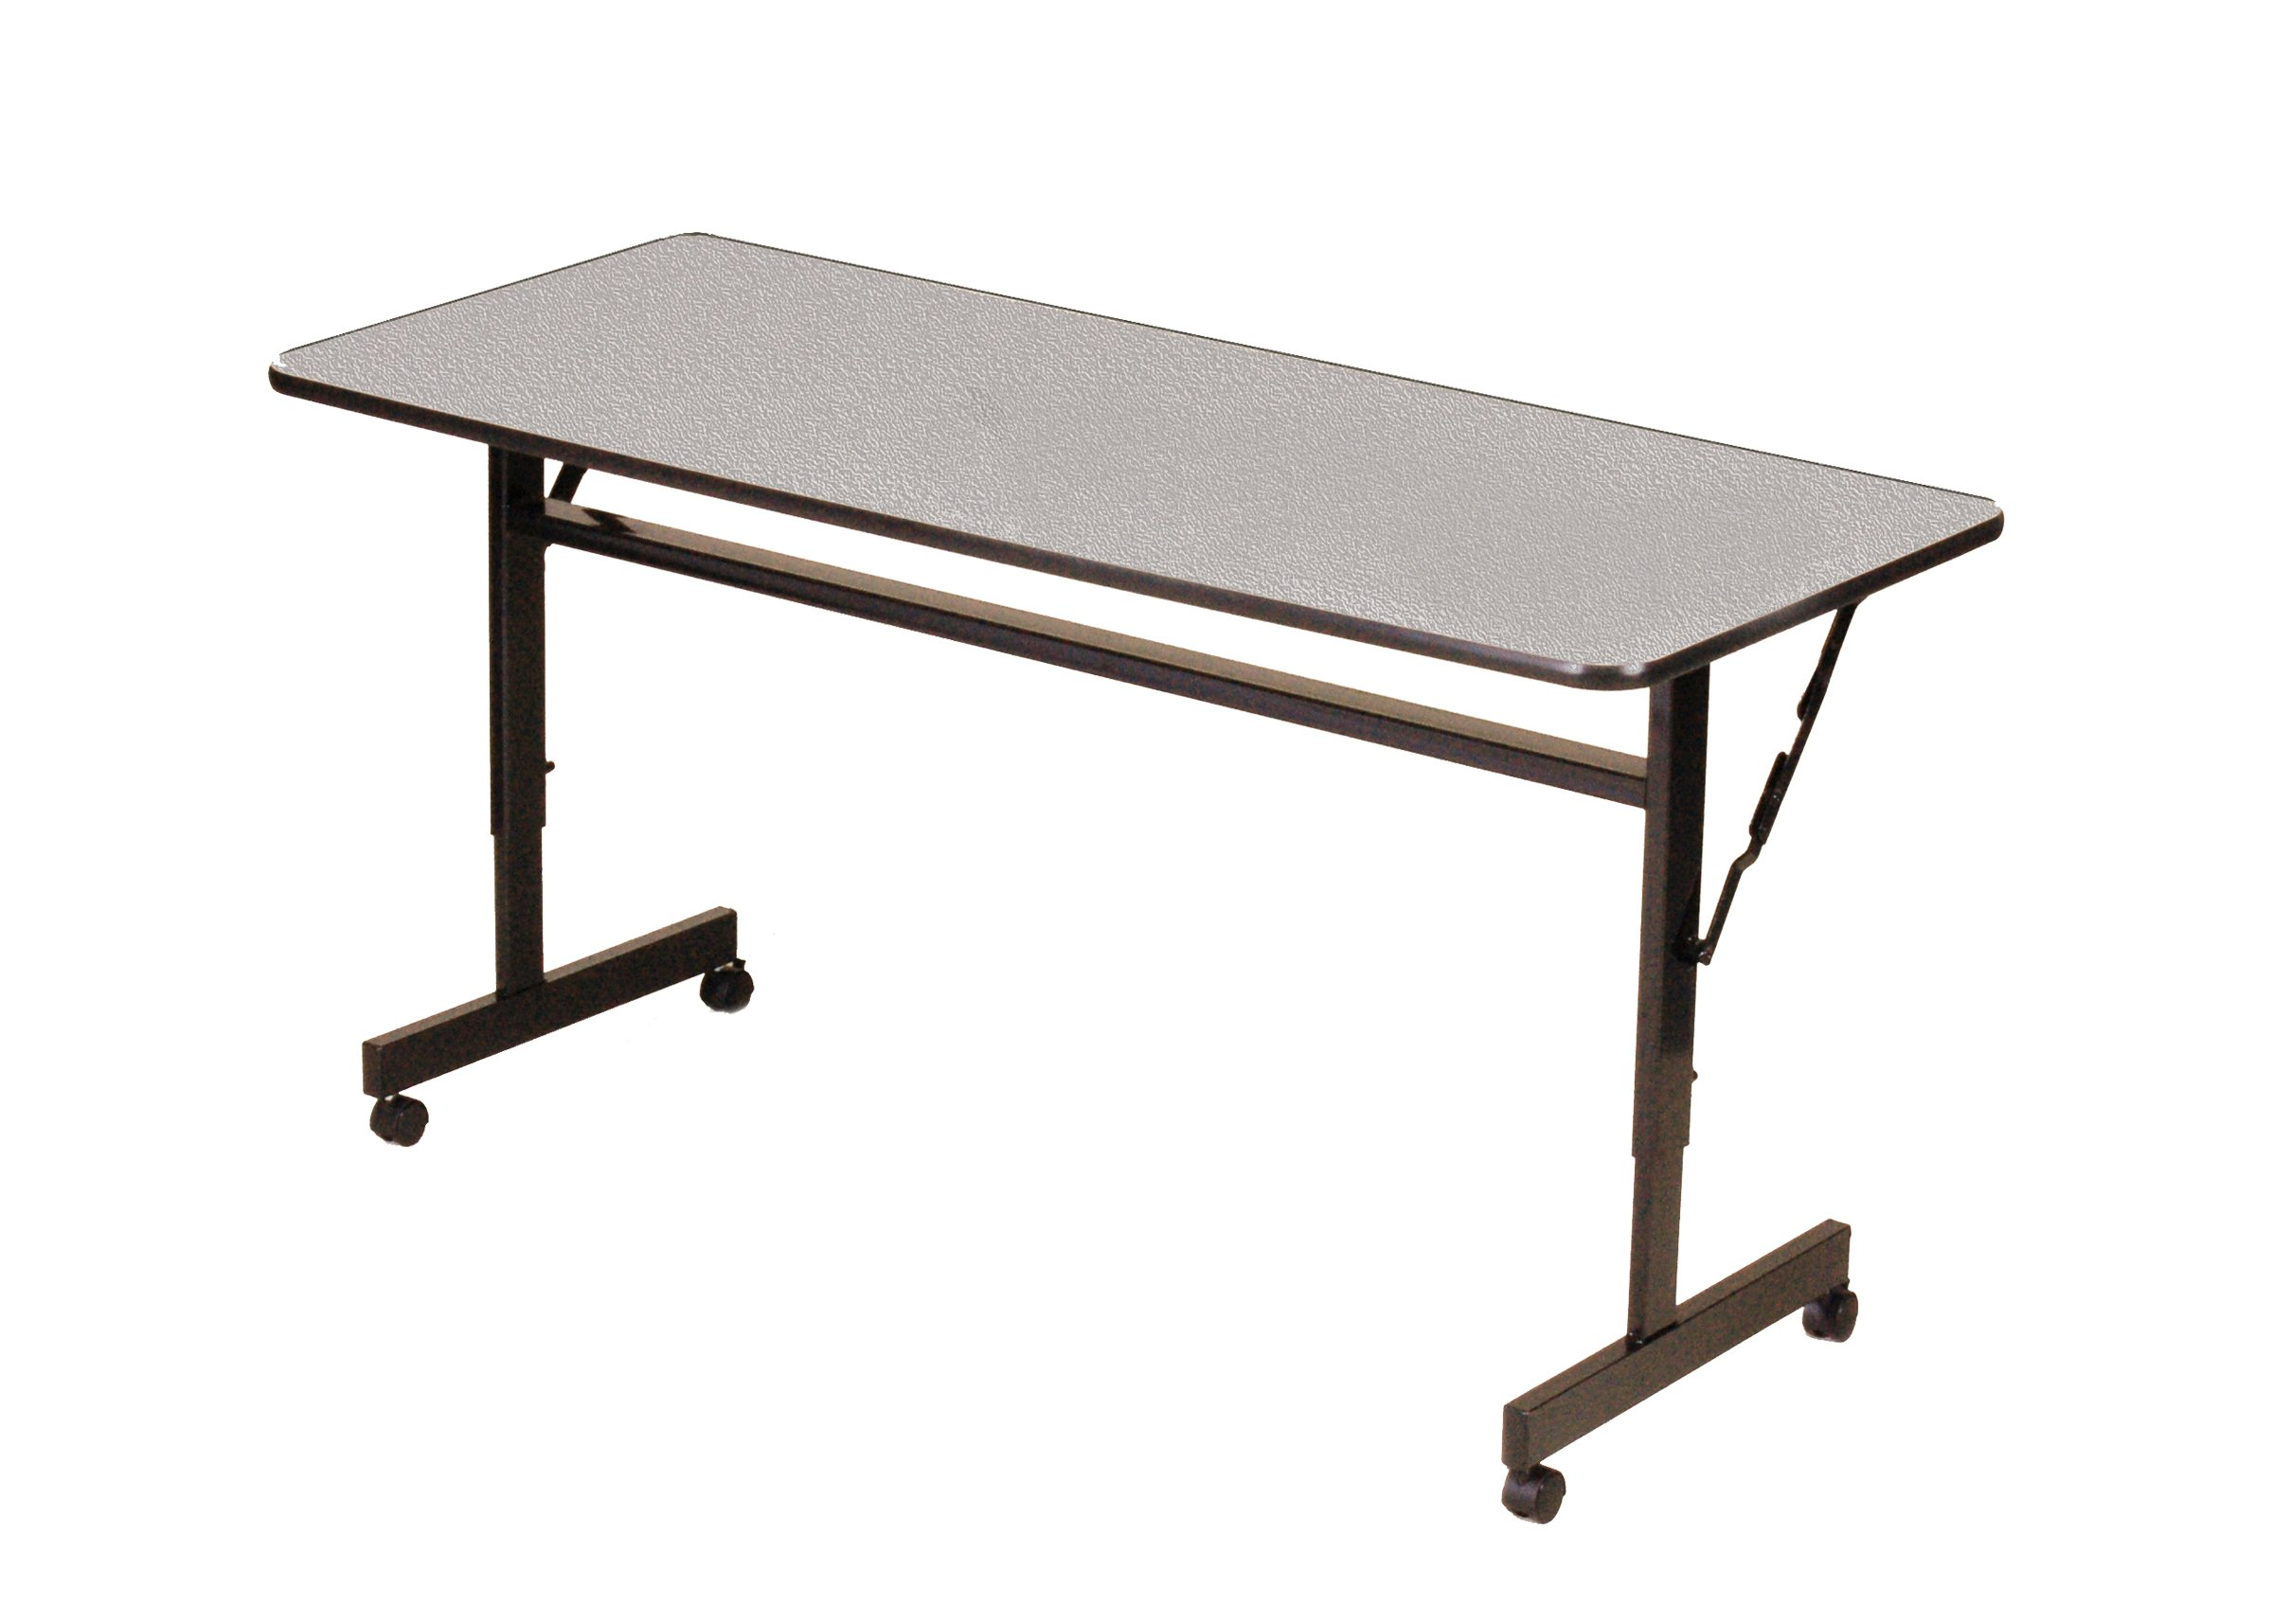 Correll FT2448M-15 EconoLine Flip Top Table, 24'' x 48'', Adjustable Height, Gray Granite Melamine Top, Rectangle, Seats 2 by Correll